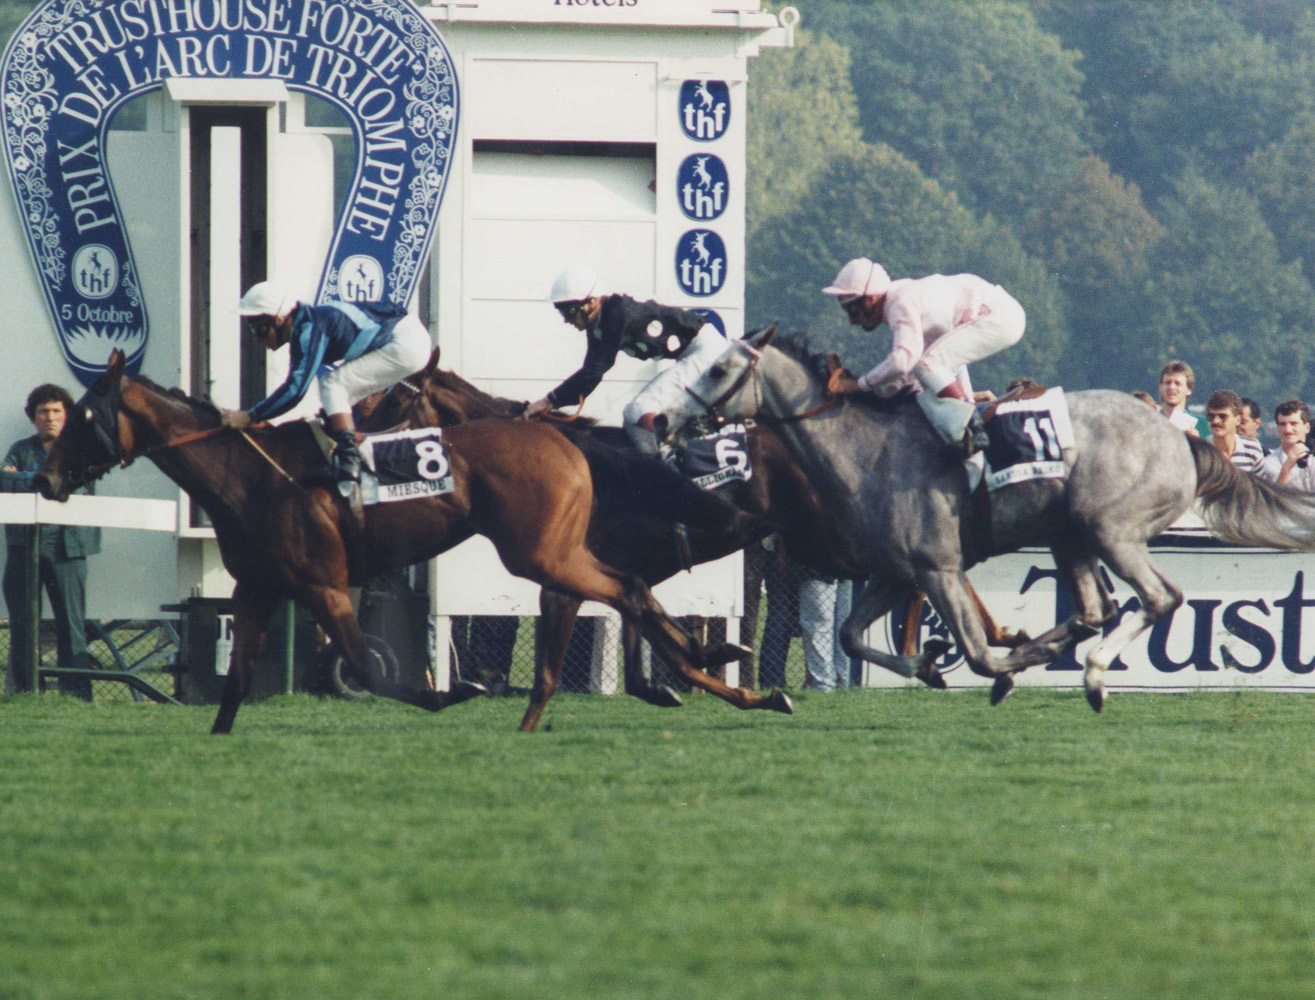 Miesque (Freddy Head up) winning the 1986 Prix Marcel Boussac at Longchamp (APRH Bertrand/Museum Collection)